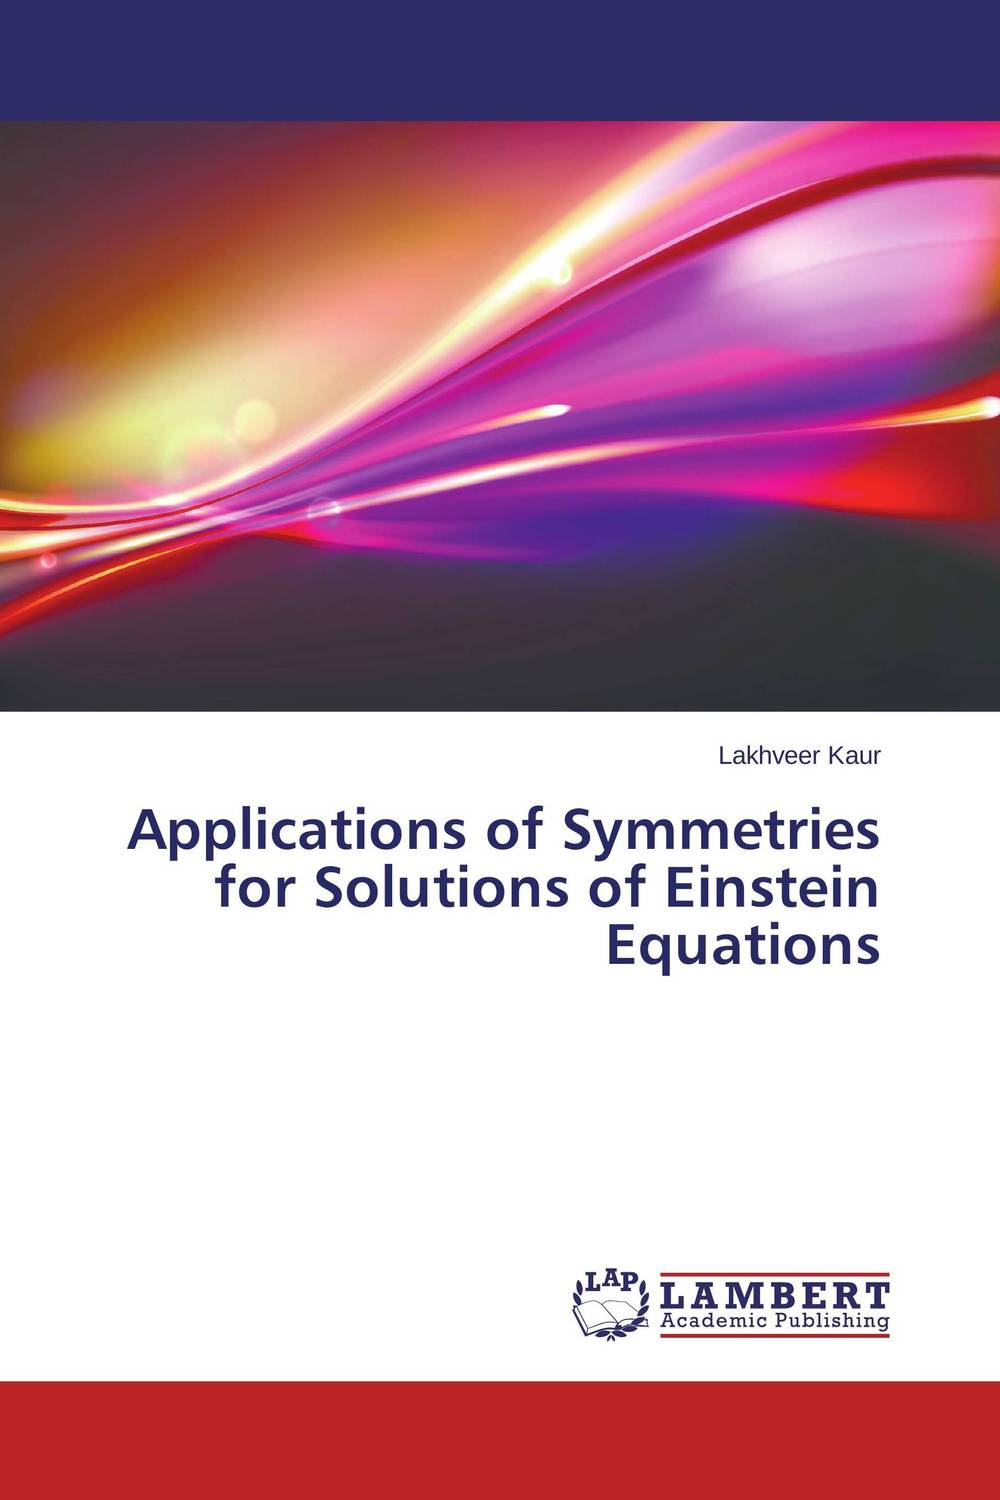 Applications of Symmetries for Solutions of Einstein Equations